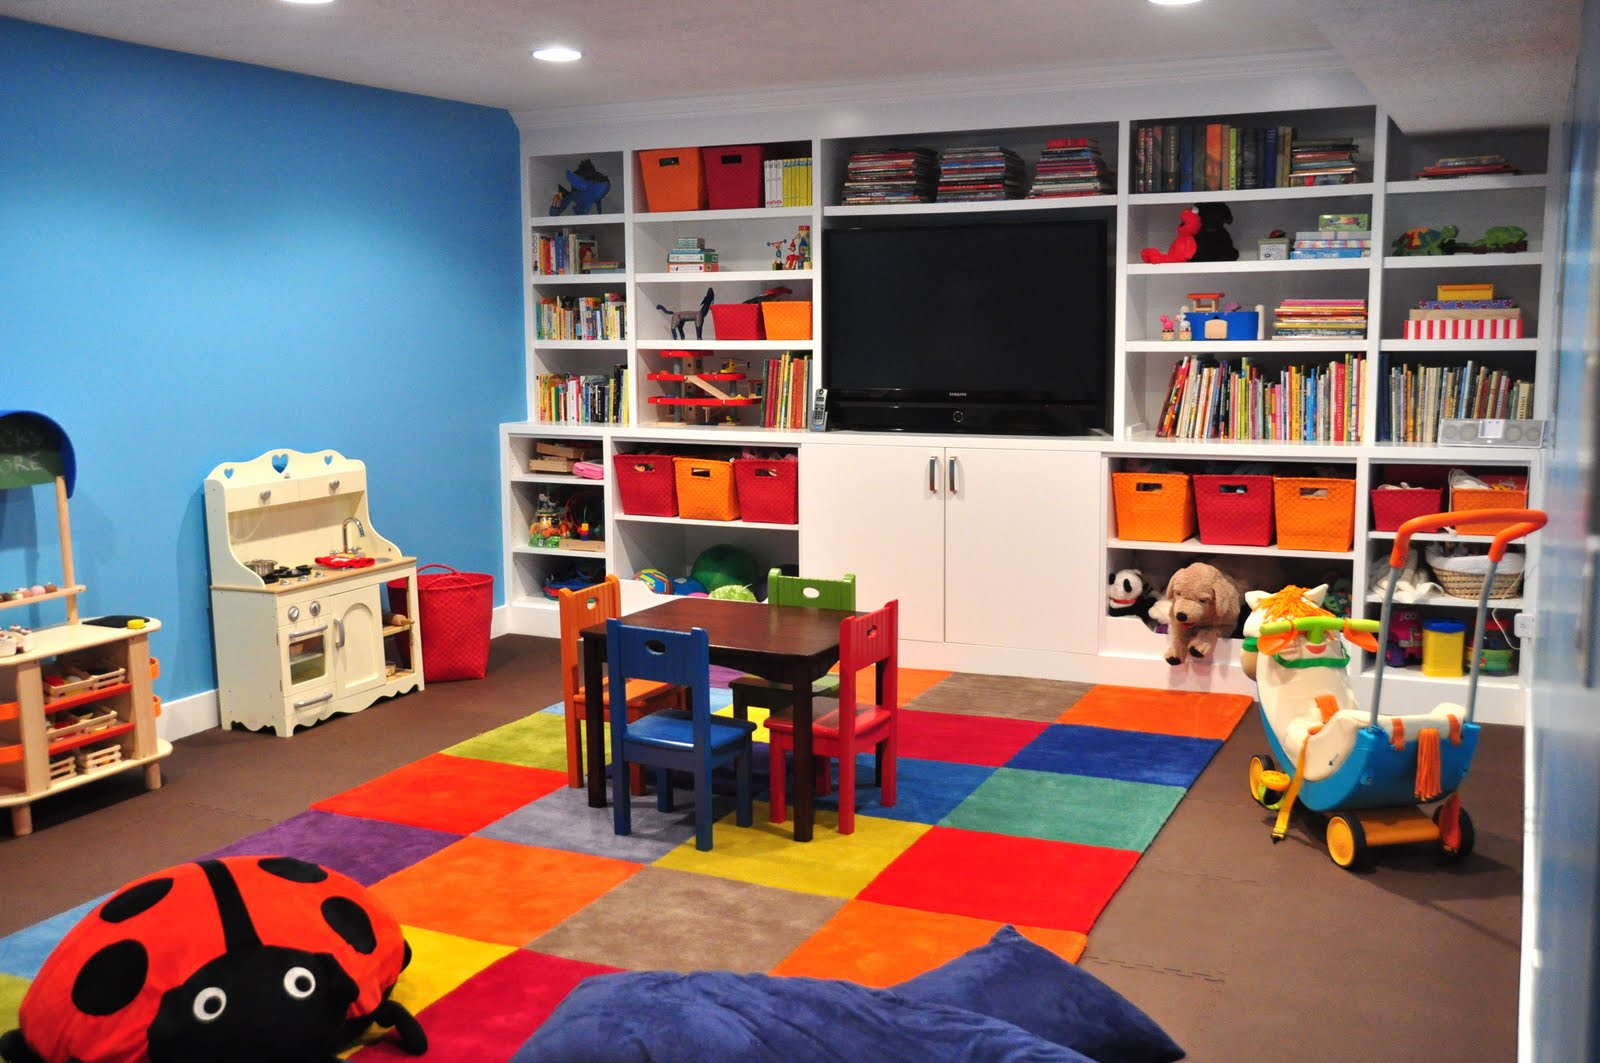 Patchwork Rug Of Bright Multicolored Squares Built In Storage And Flatscreen TV (Image 8 of 10)